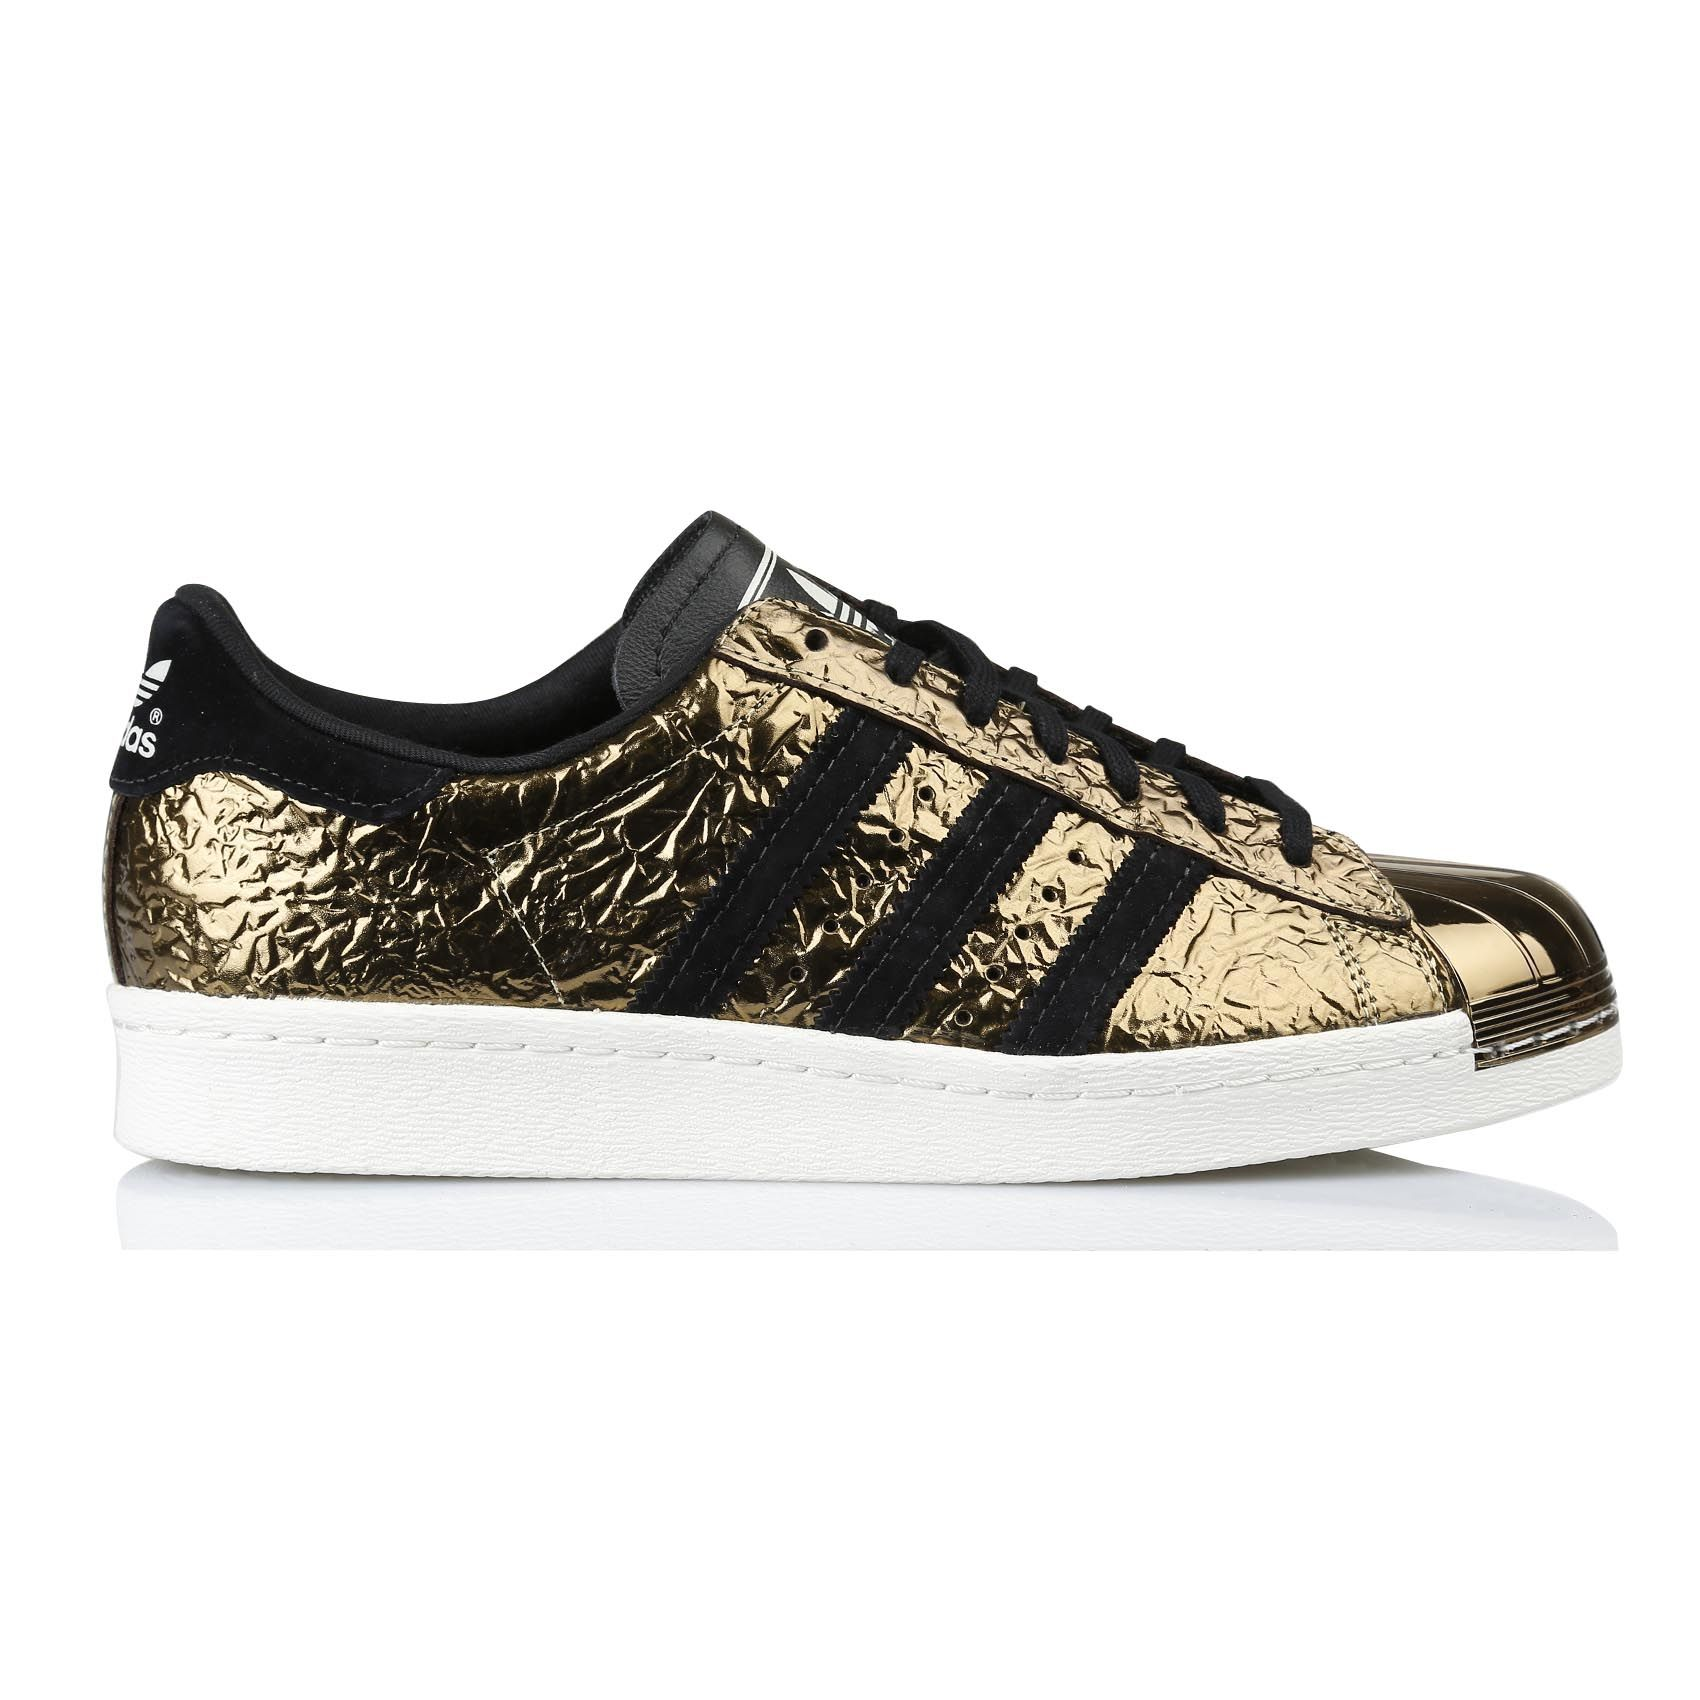 2016 Baskets Adidas Femme Superstar Star Wars Modern